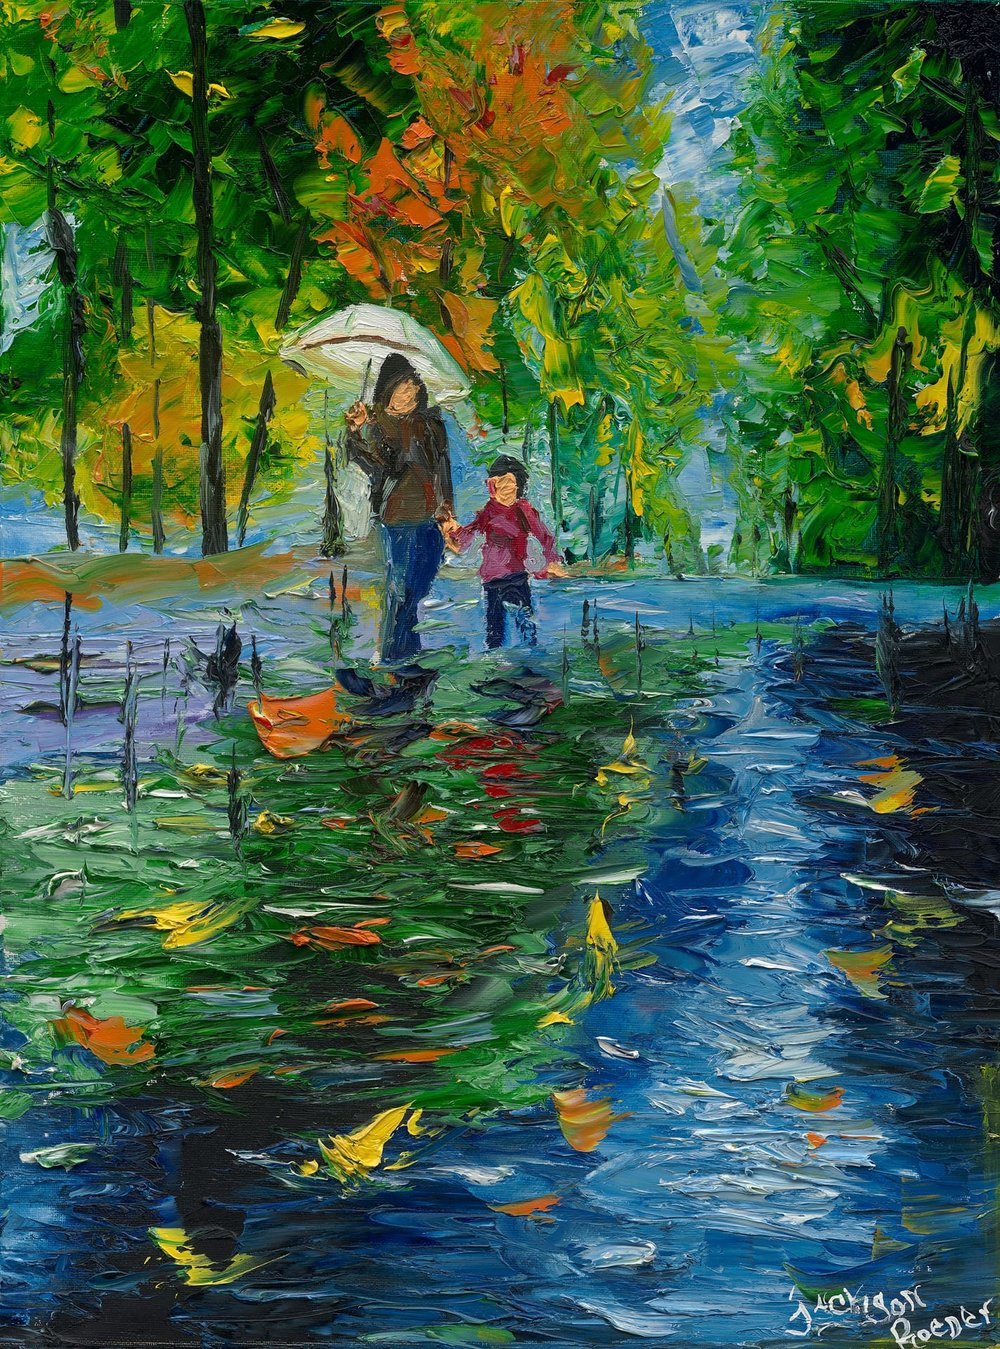 Umbrella Adult with Child - Reprint Available For Purchase